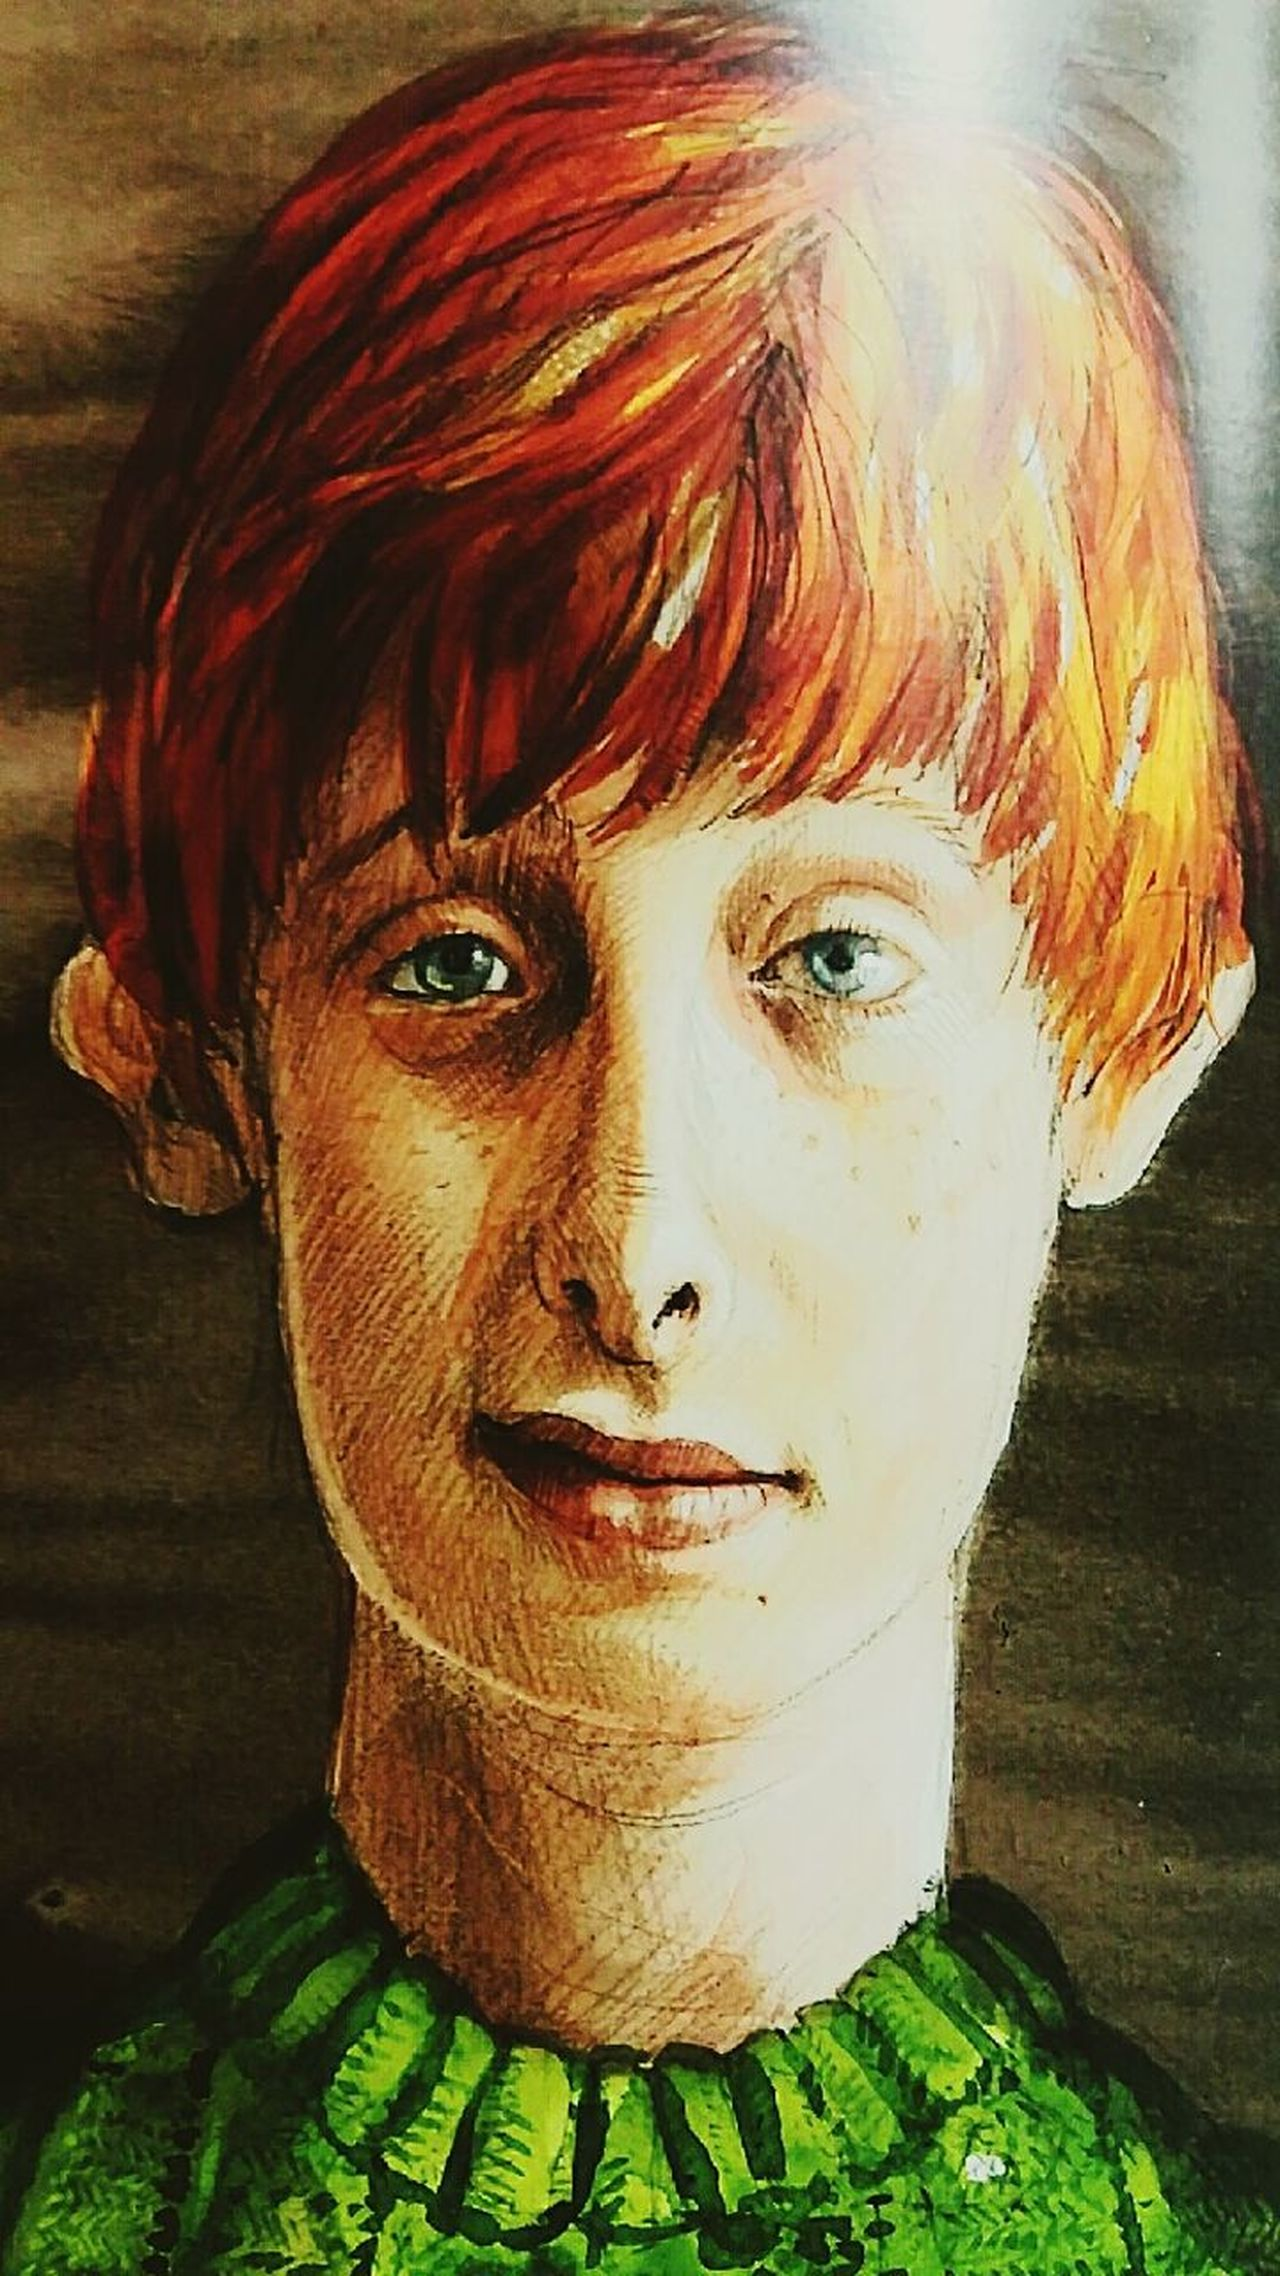 J.k. Rowling Harry Potter HP People Portrait Young Adult Redhead One Person Looking At Camera Philosophical Stone Book Ronnie Harry Potter ⚡ Harry Potter ❤ Books ♥